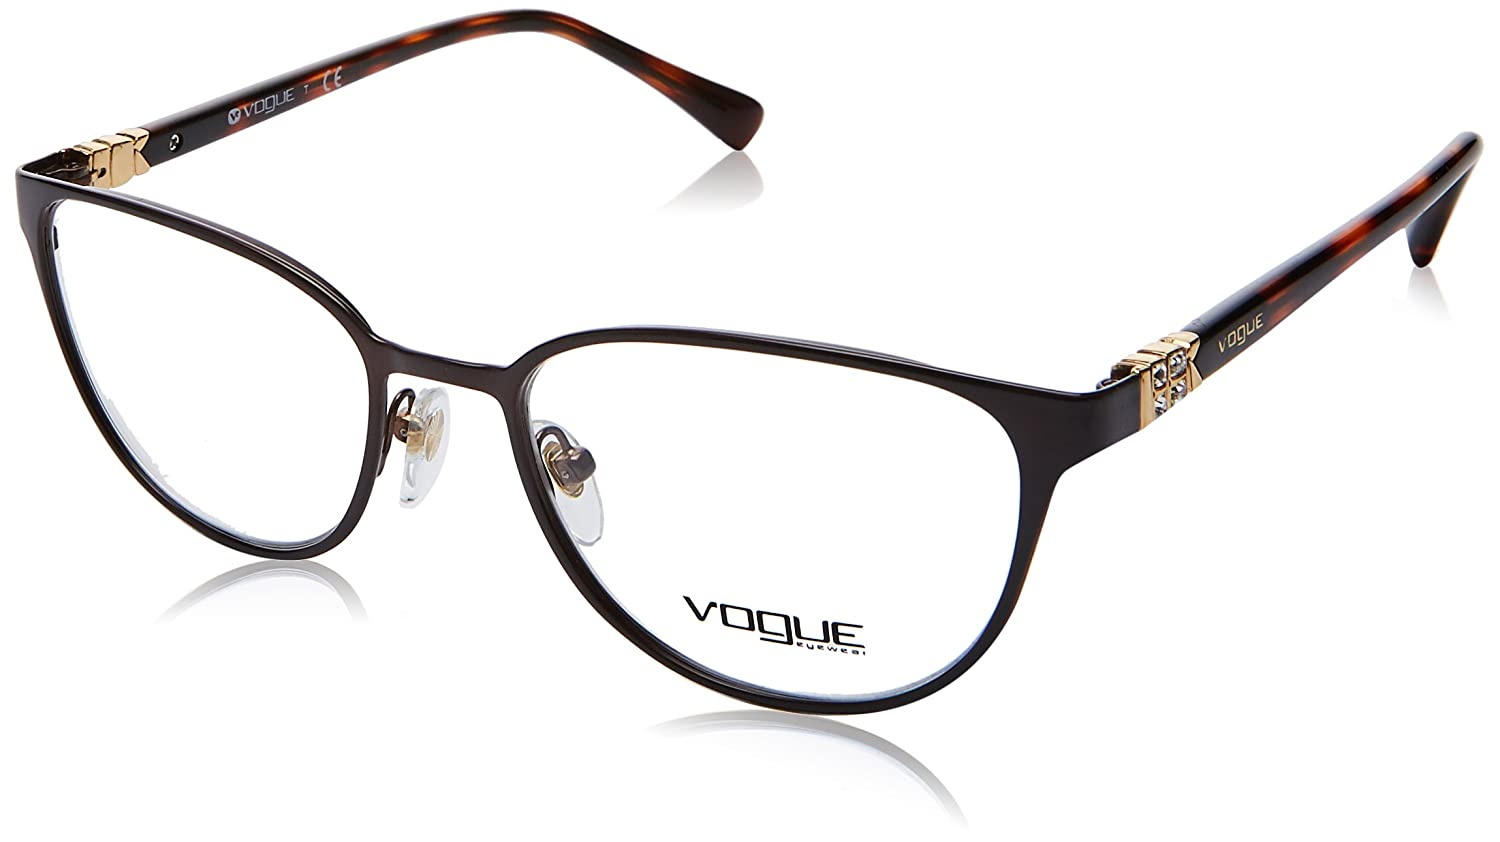 Vogue VO4062B Eyeglass Frames 997-52 Brown VO4062B-997-52